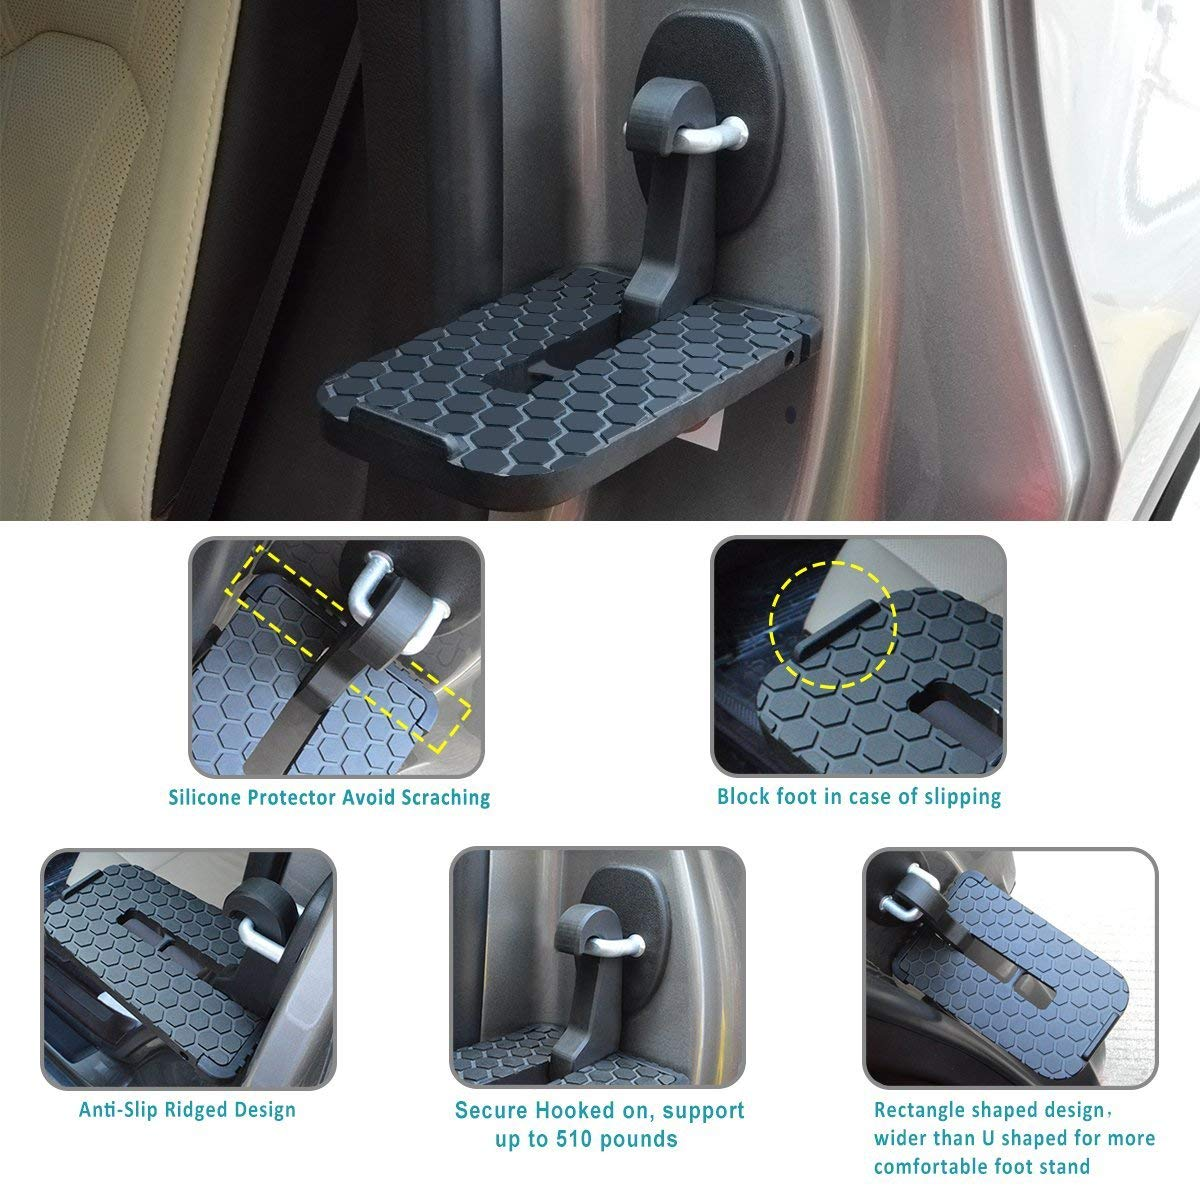 Circle for Car Doorstep,Aluminum Alloy Hooked Folding Ladder Foot Pegs,Easy Access to Car Rooftop